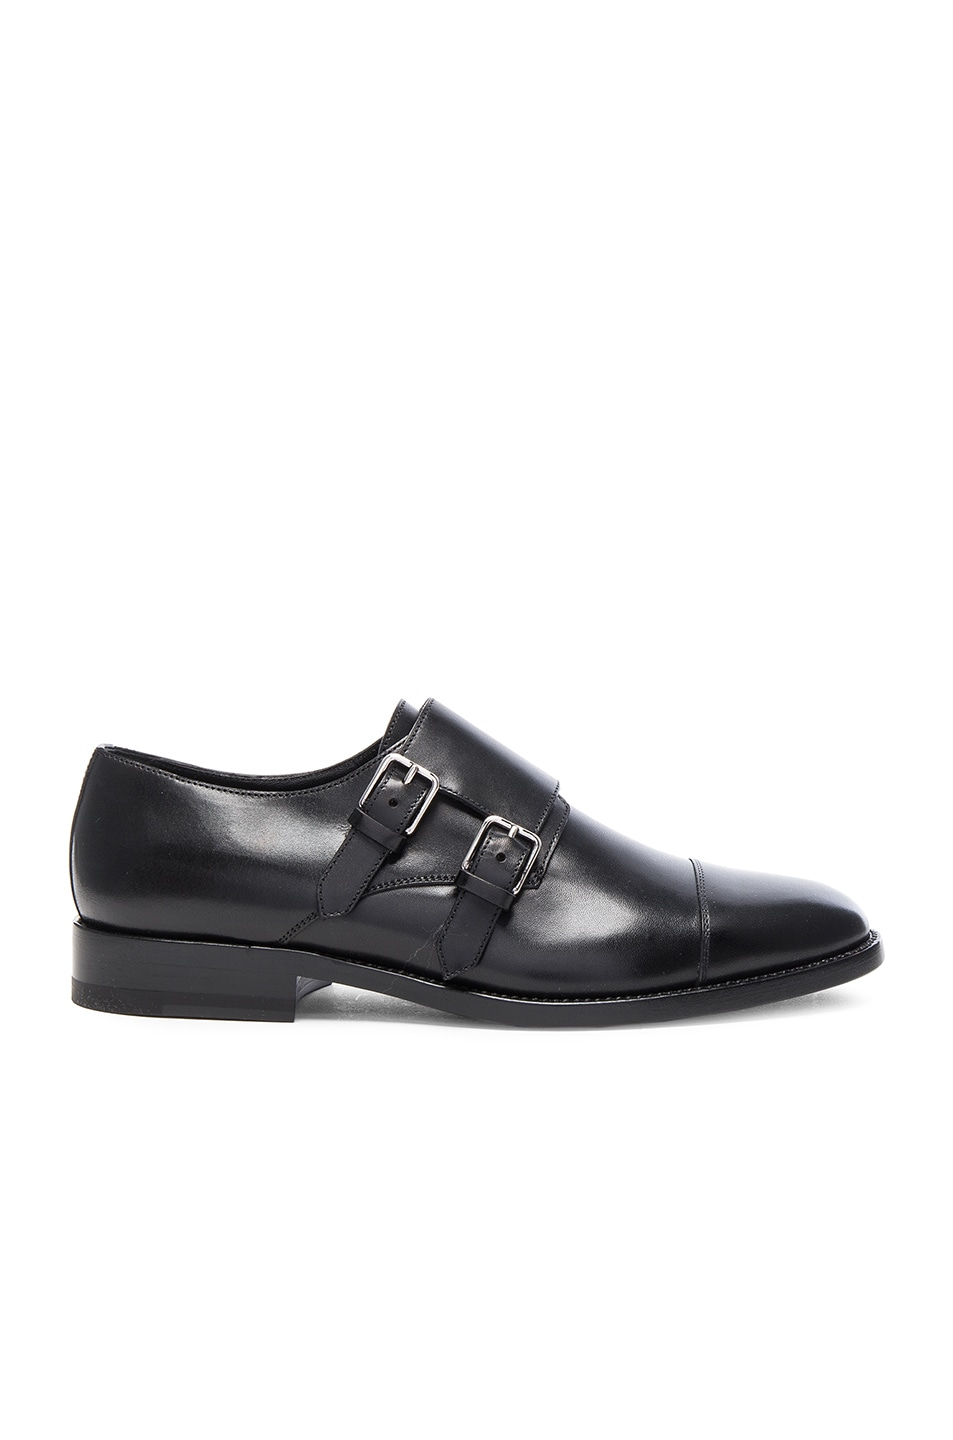 Image 1 of Saint Laurent Dylan Monk Shoes in Black